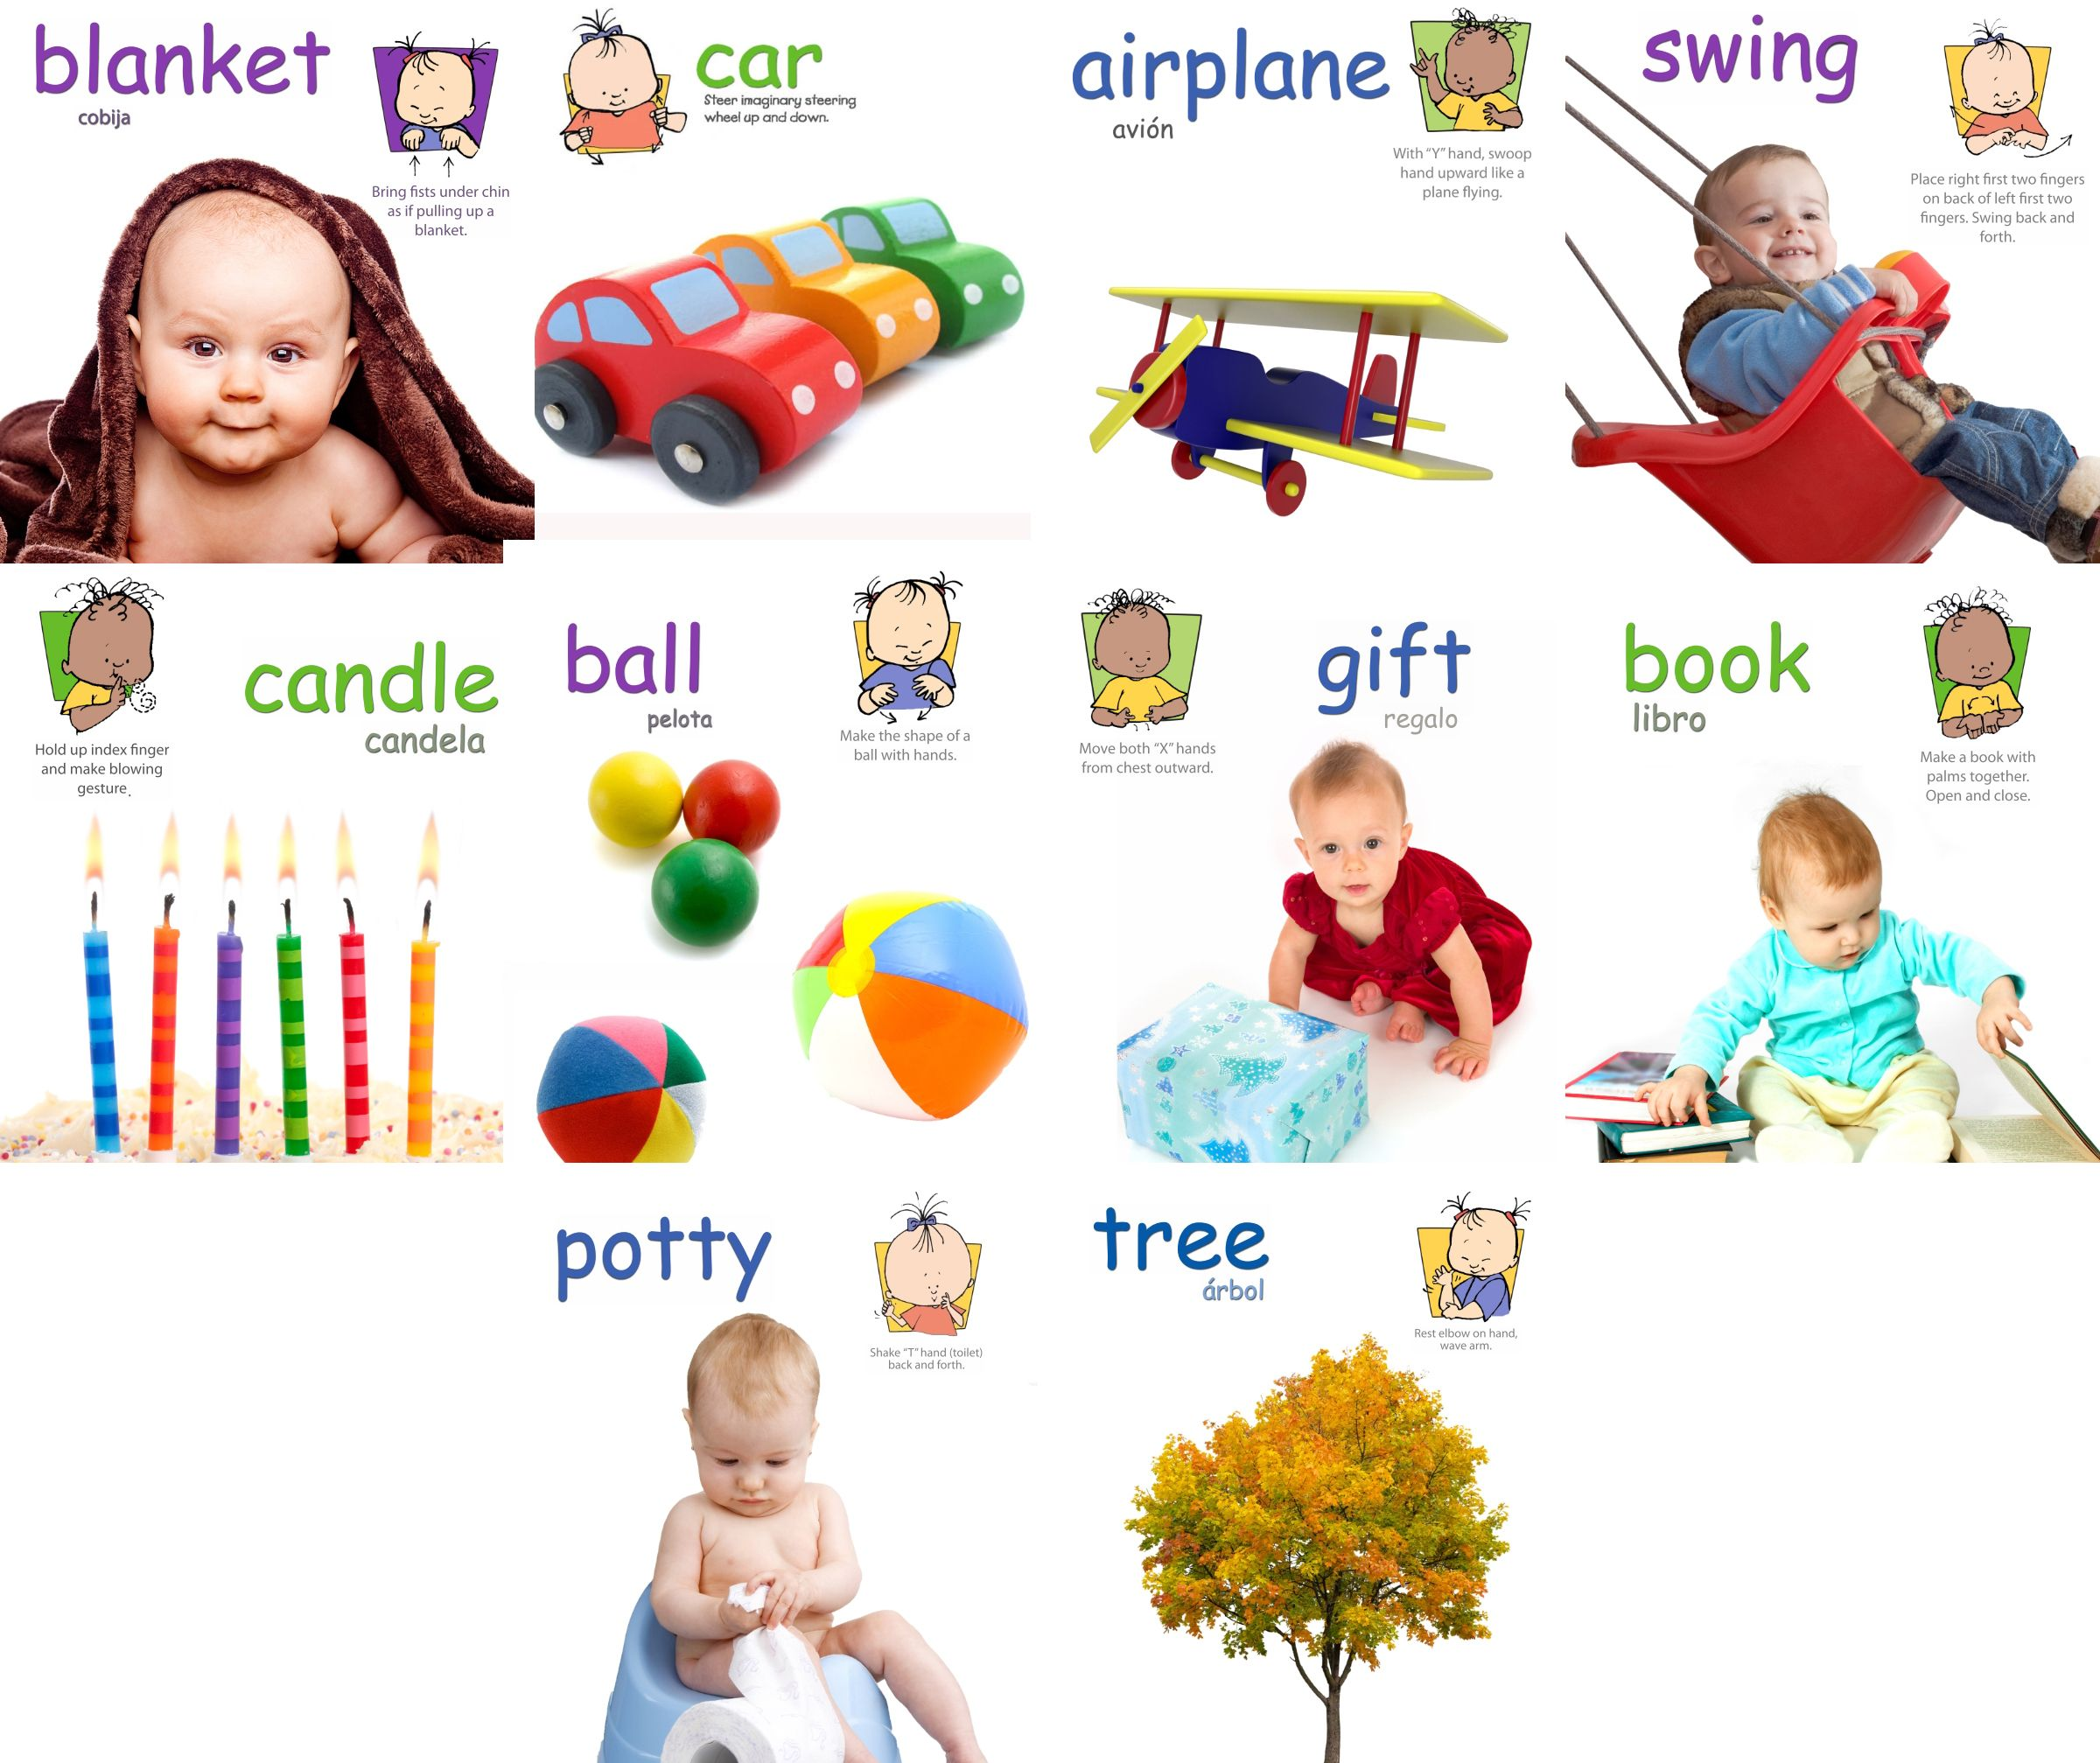 Objects Signs Poster Pack Baby Signs Printable Poster Pack With Signs For Airplane Blanket